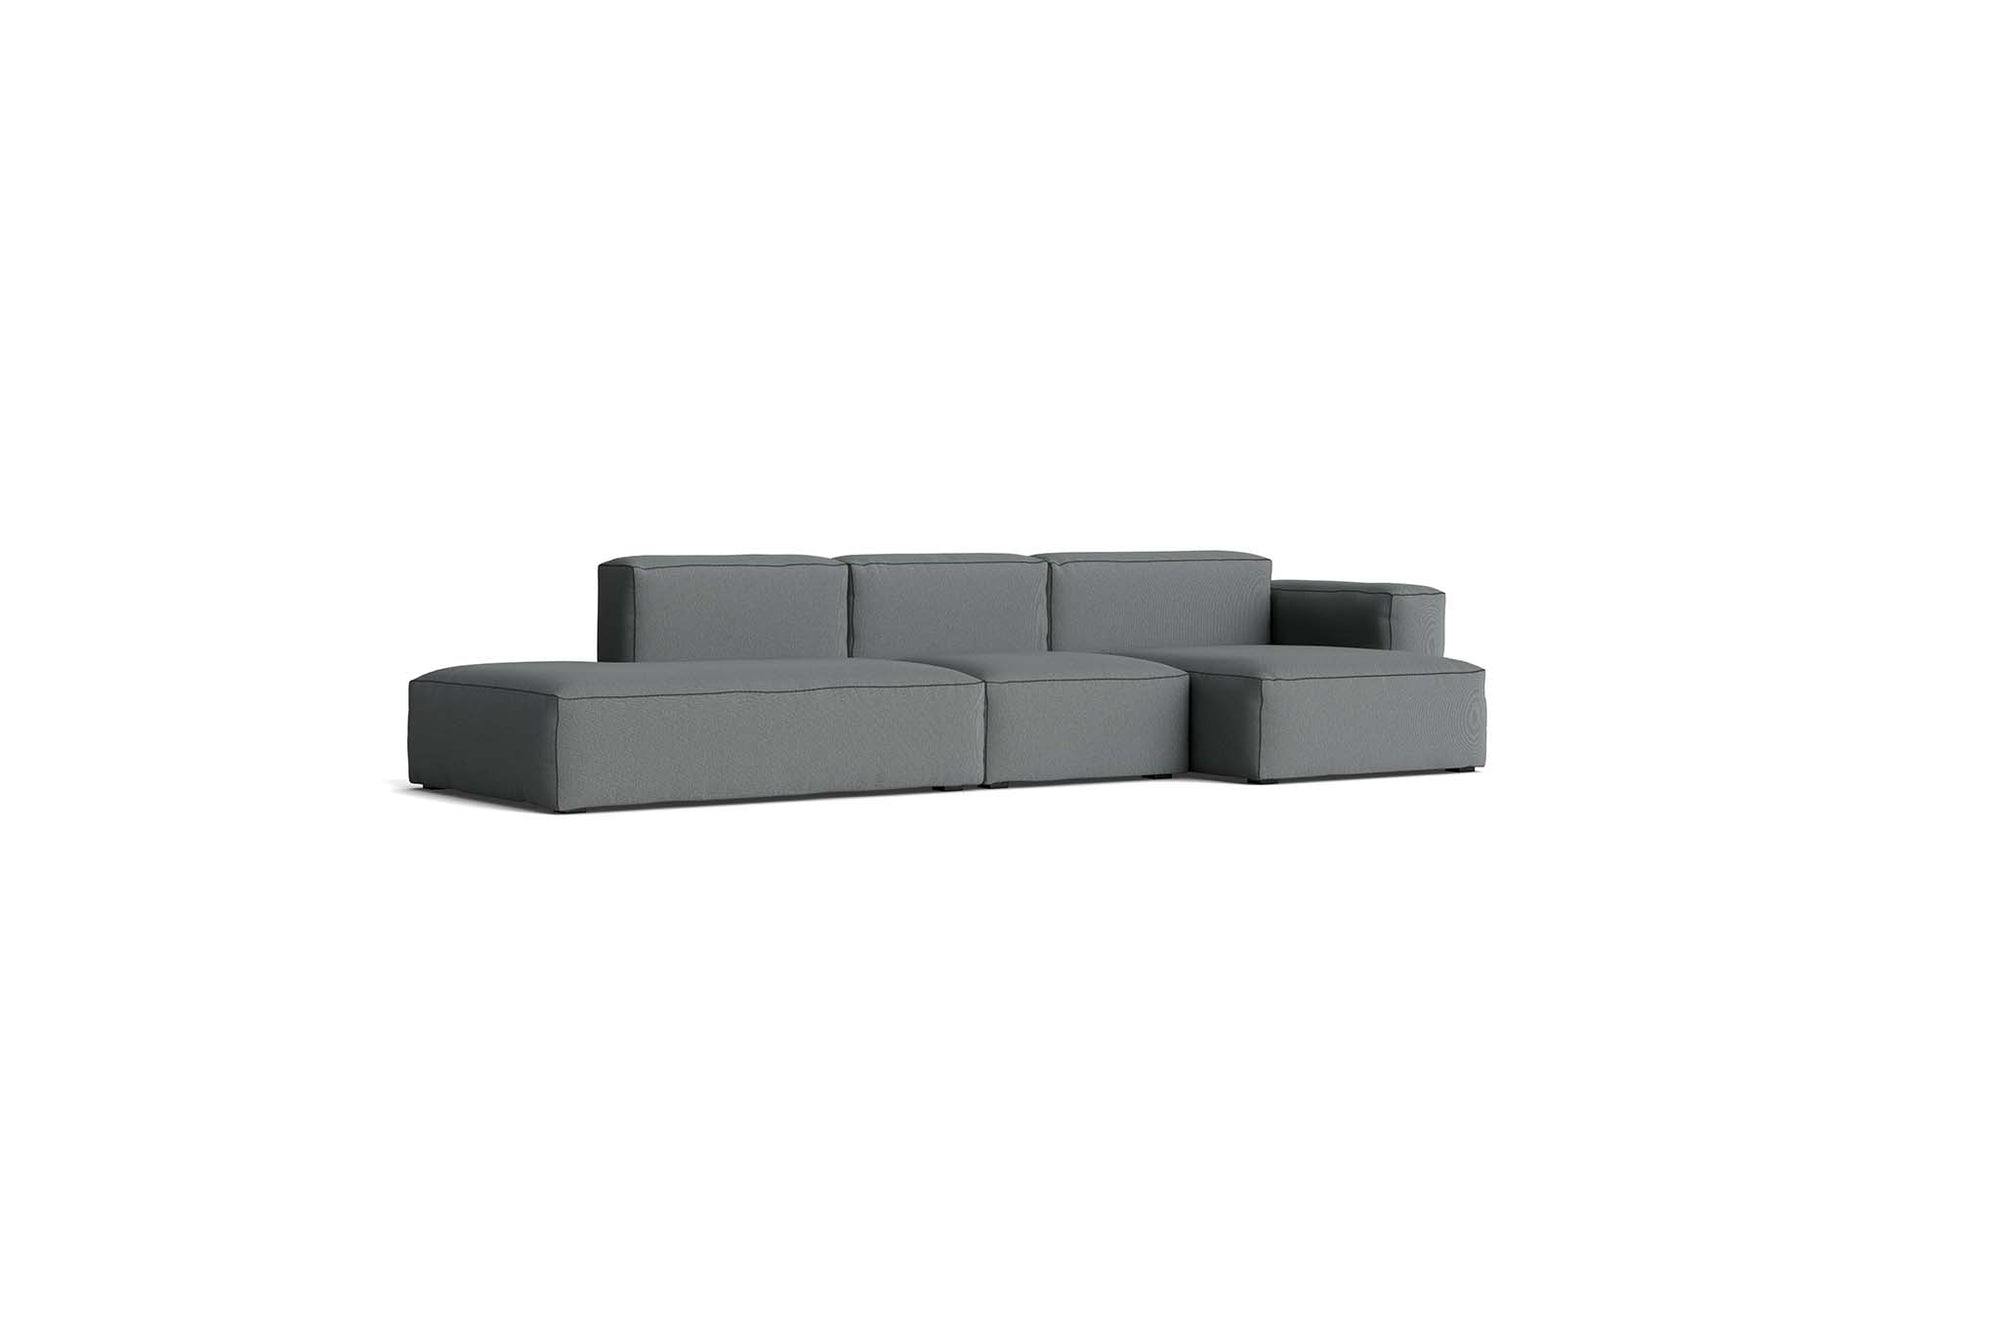 HAY - Mags Soft Low Sofa - 3 Seater - Combination 4 with Right Low Armrest